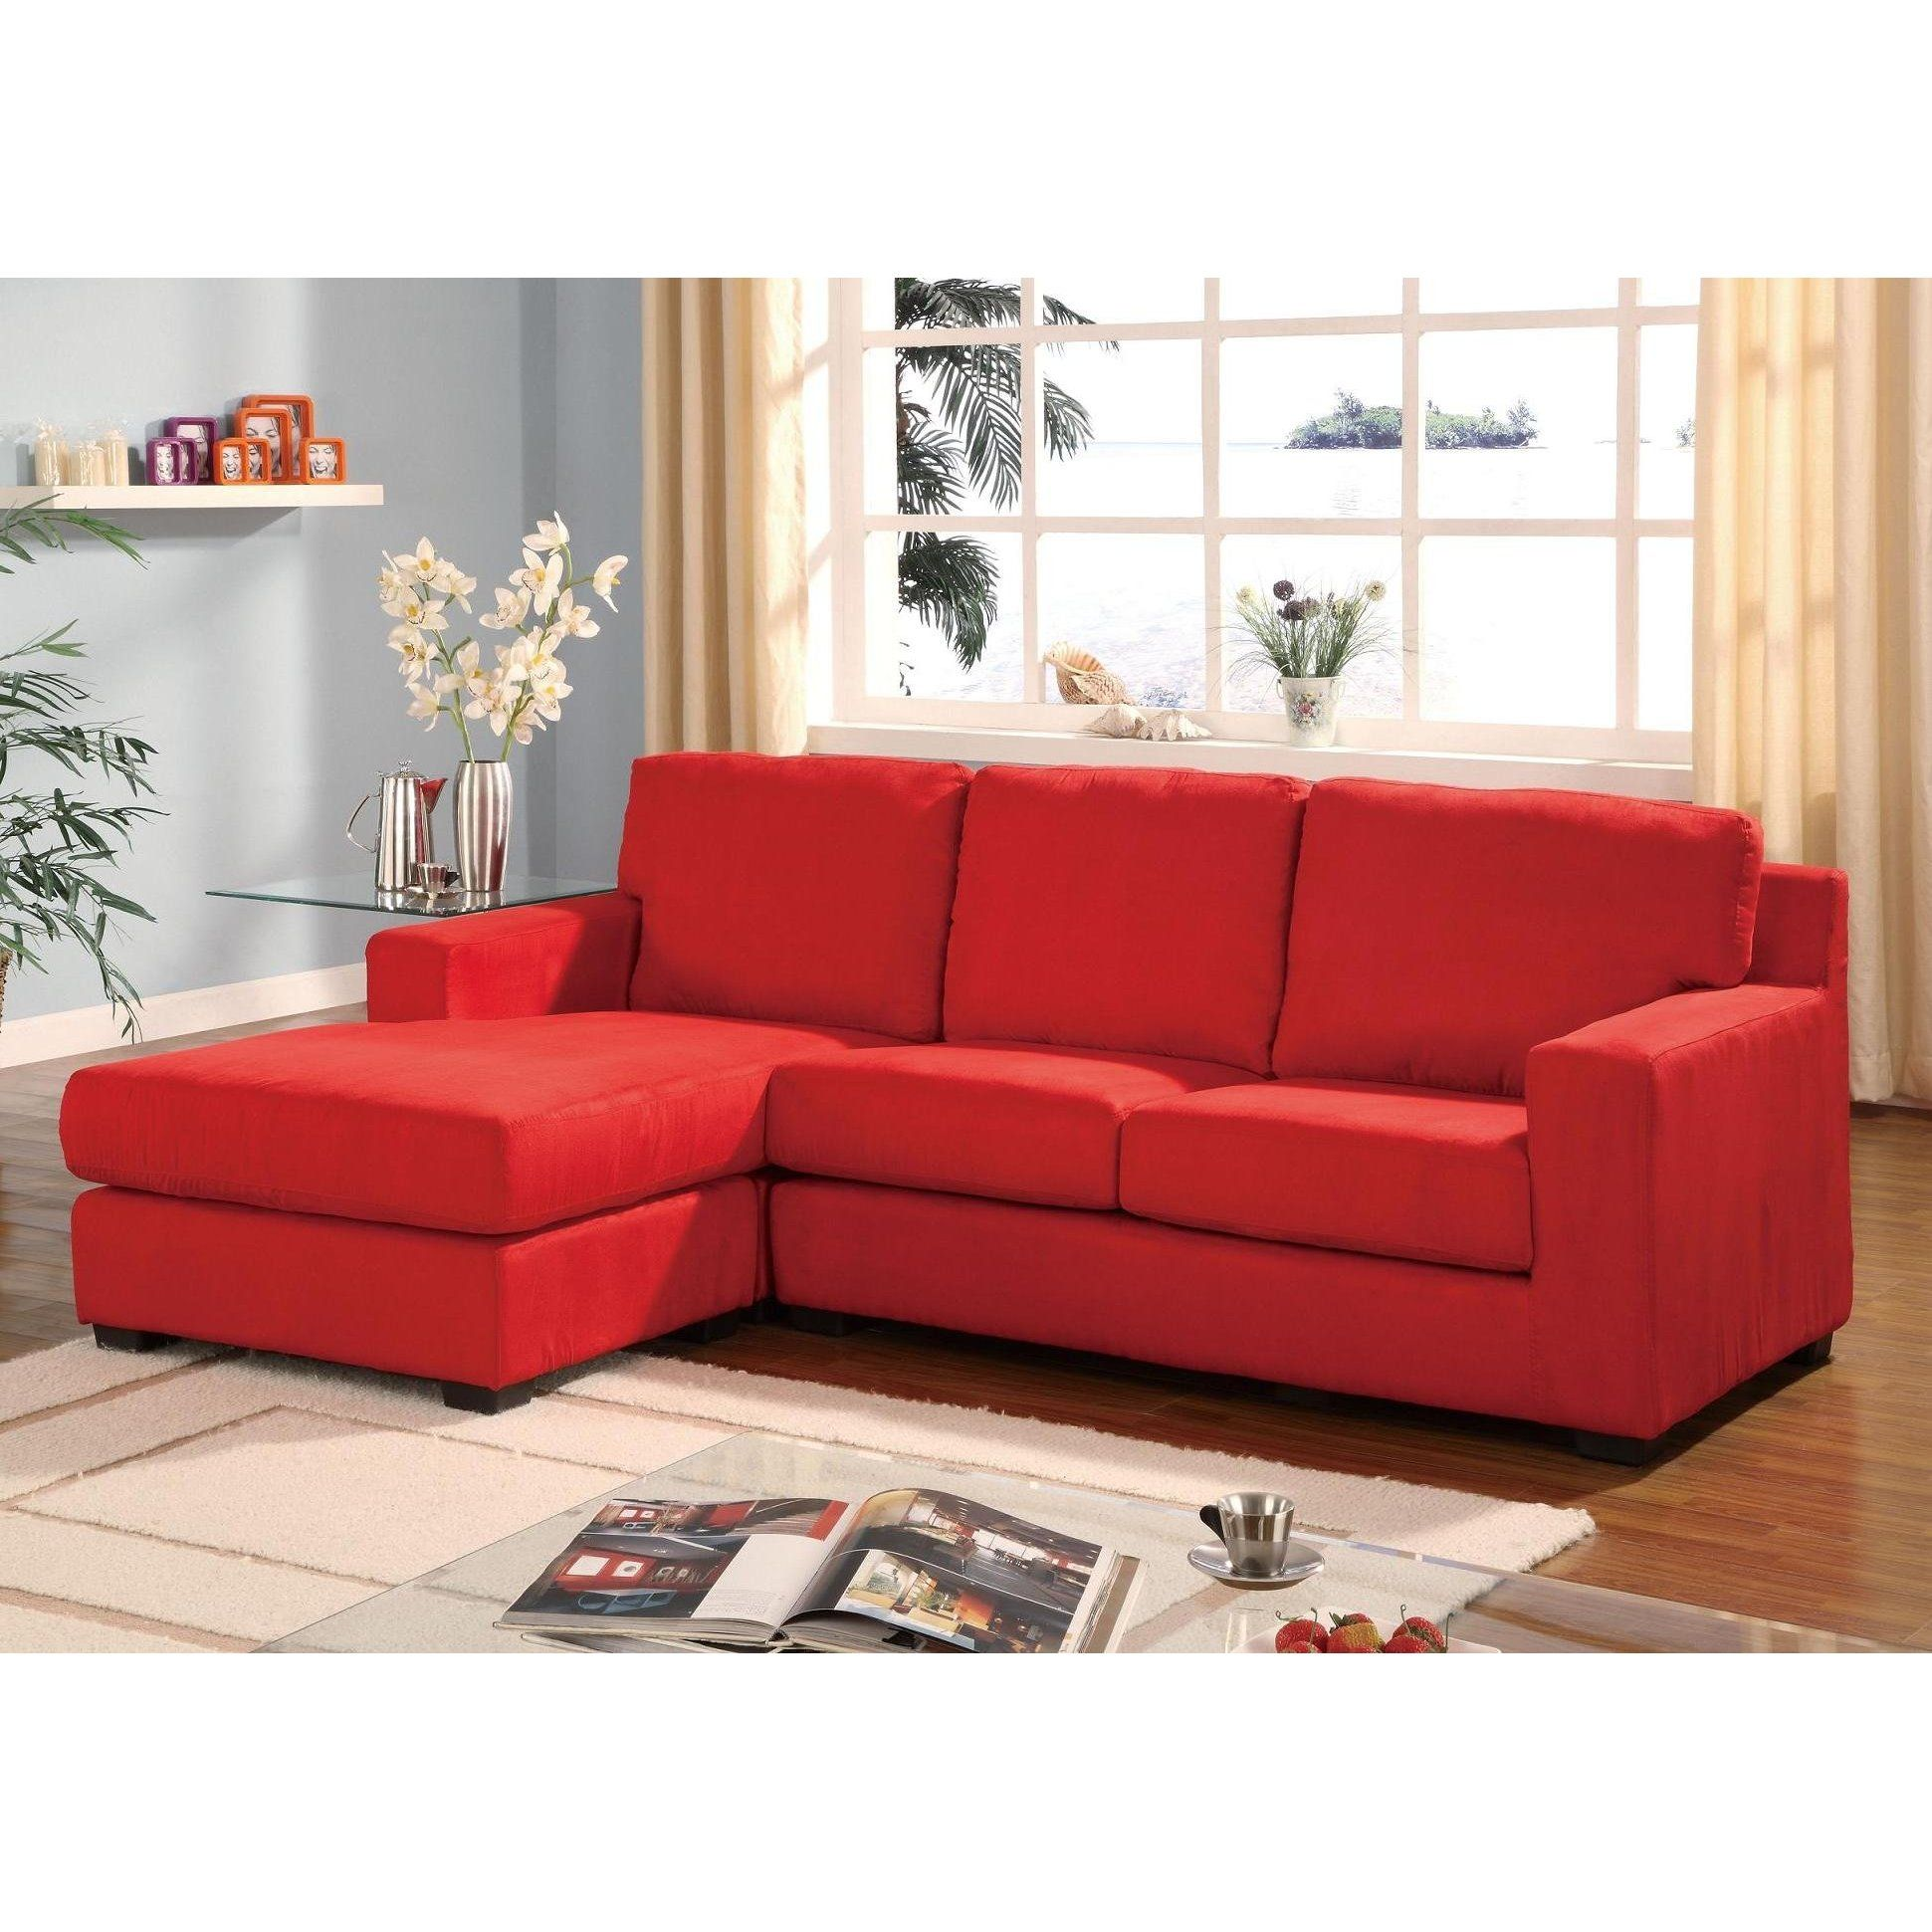 Red Microfiber Multifunction Reversible Sectional Sofa